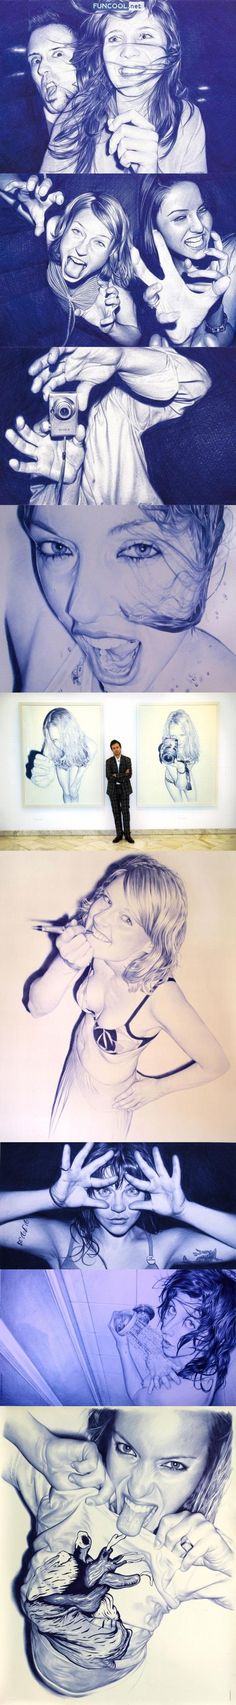 2Juan Francisco Casas is a painter who uses a bic pen to create astonishing realistic portraits. Can't believe them!